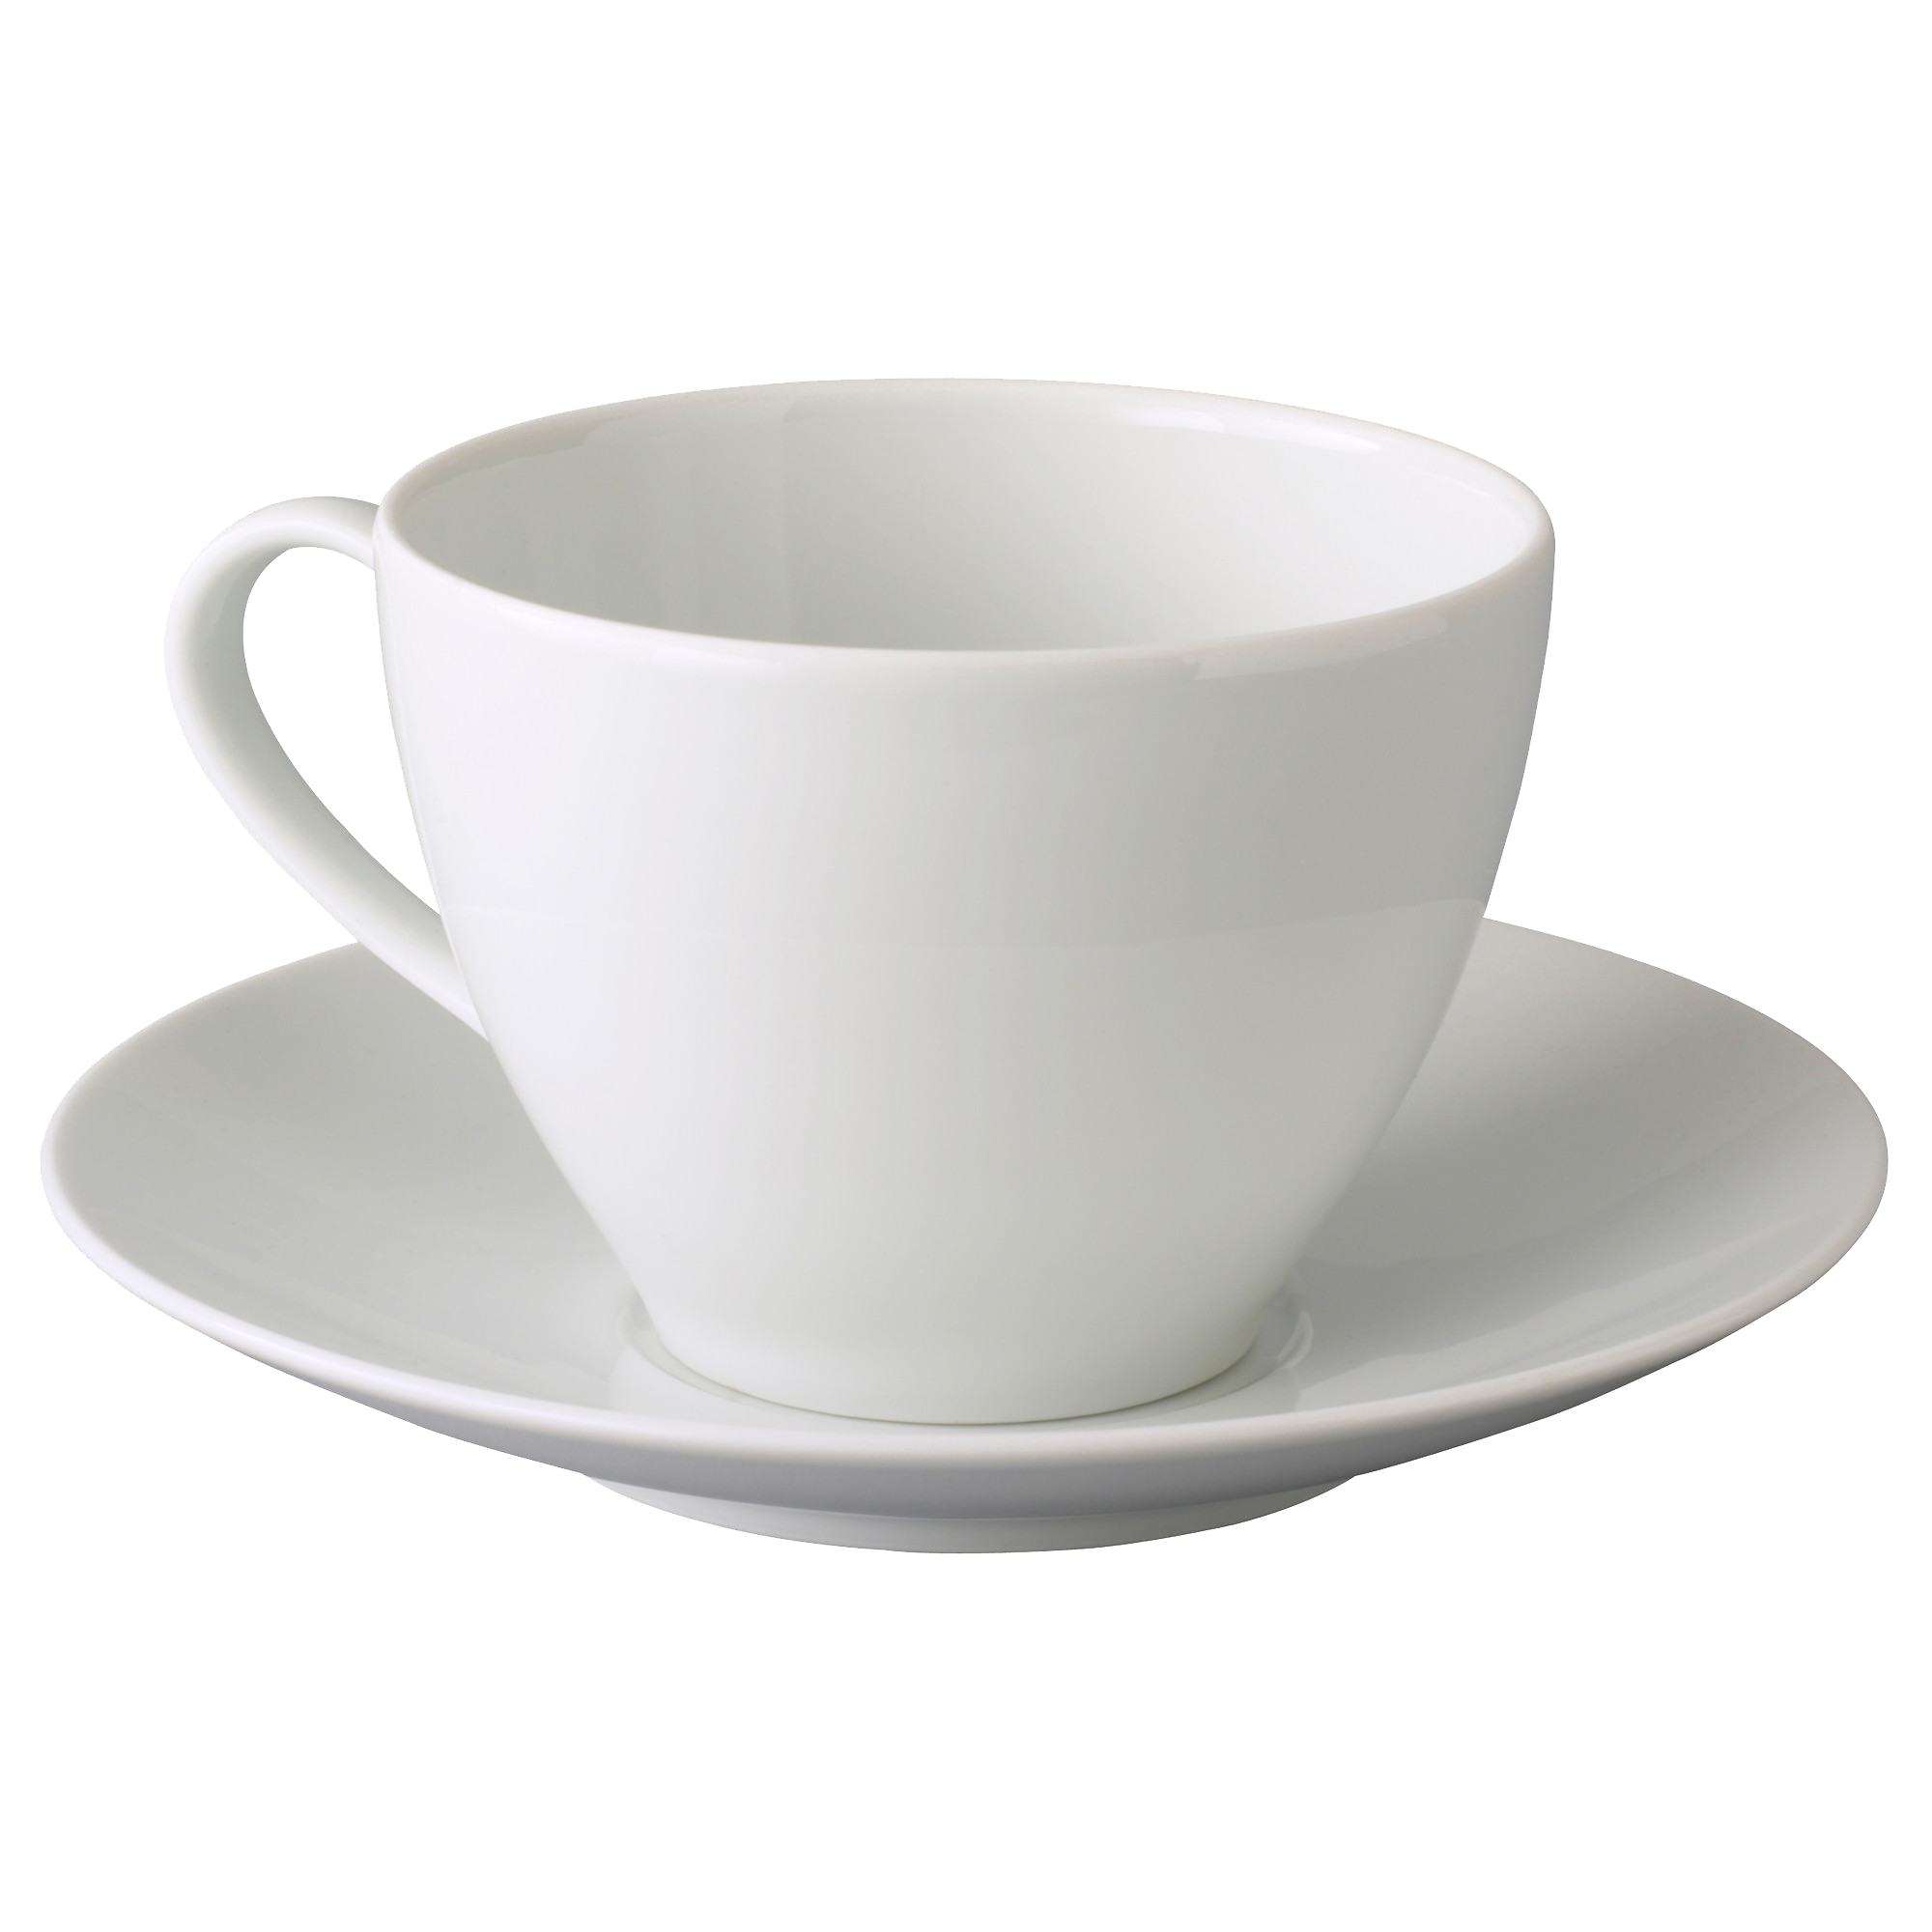 Cup PNG Images Transparent Free Download.